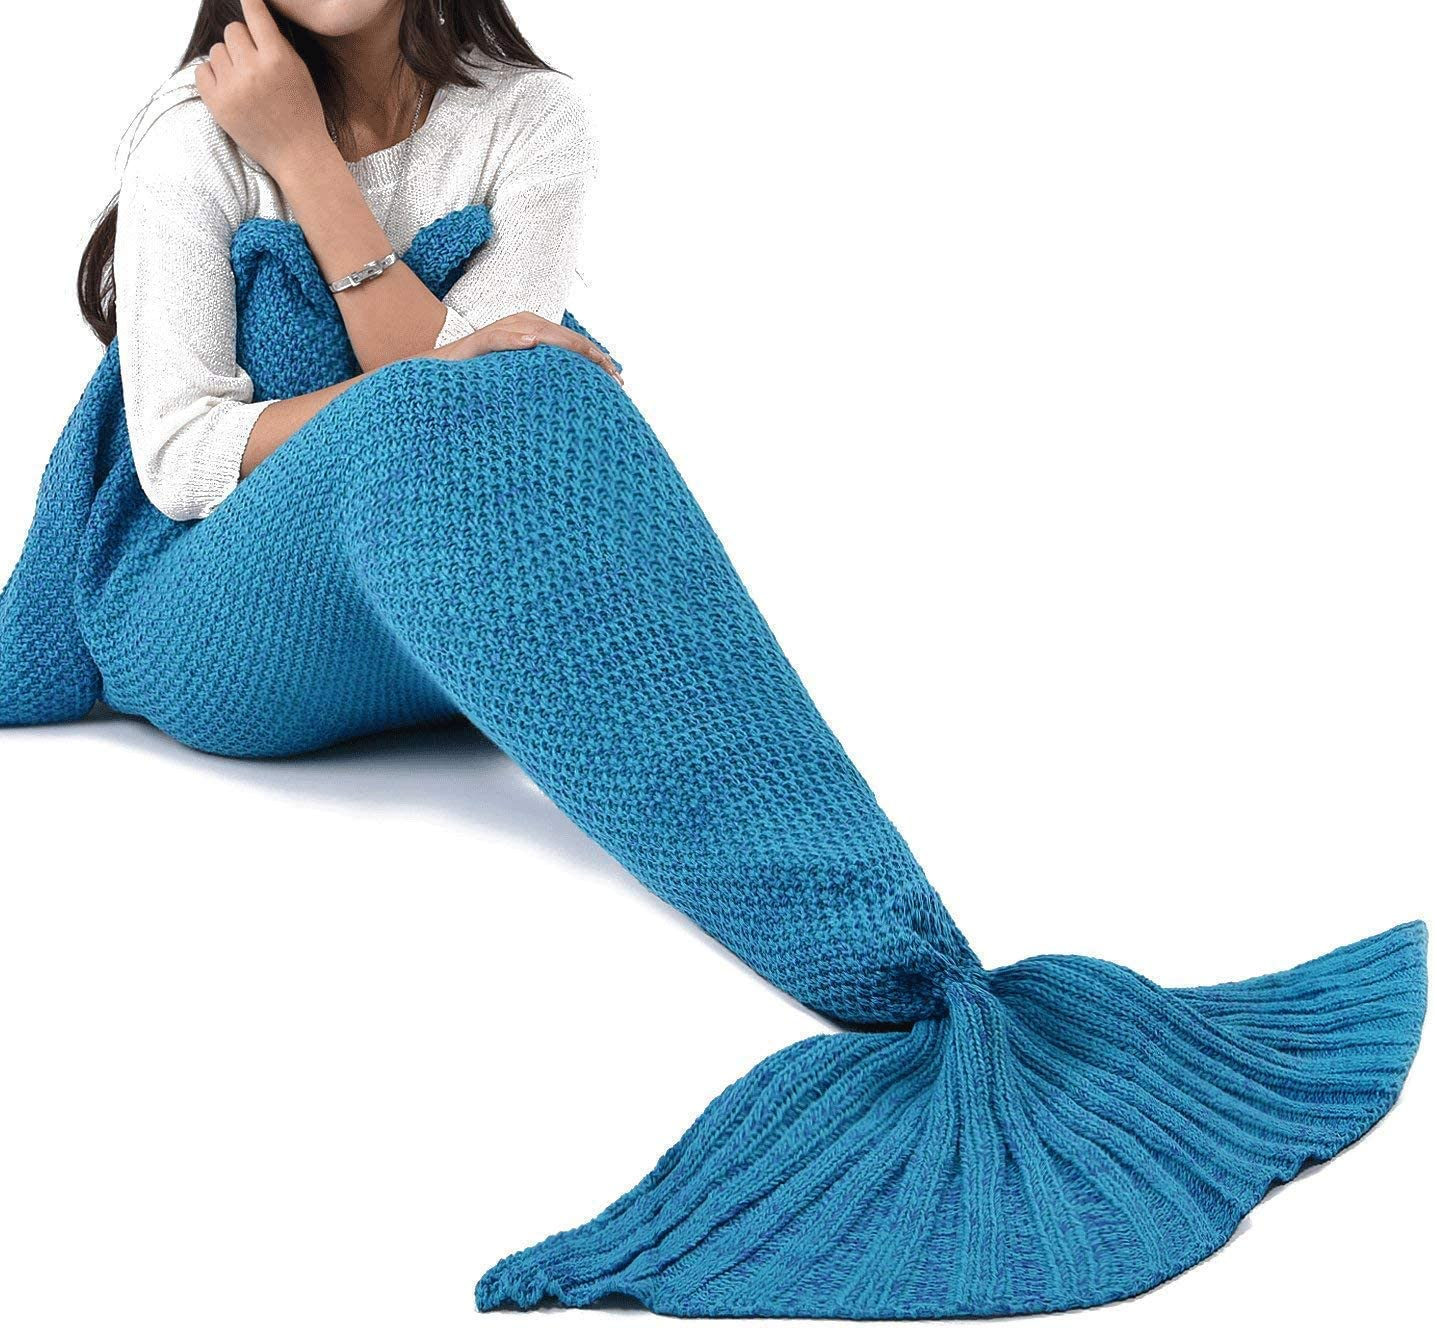 Top 10 Best Mermaid Tail Blankets (2020 Reviews & Buying Guide) 1